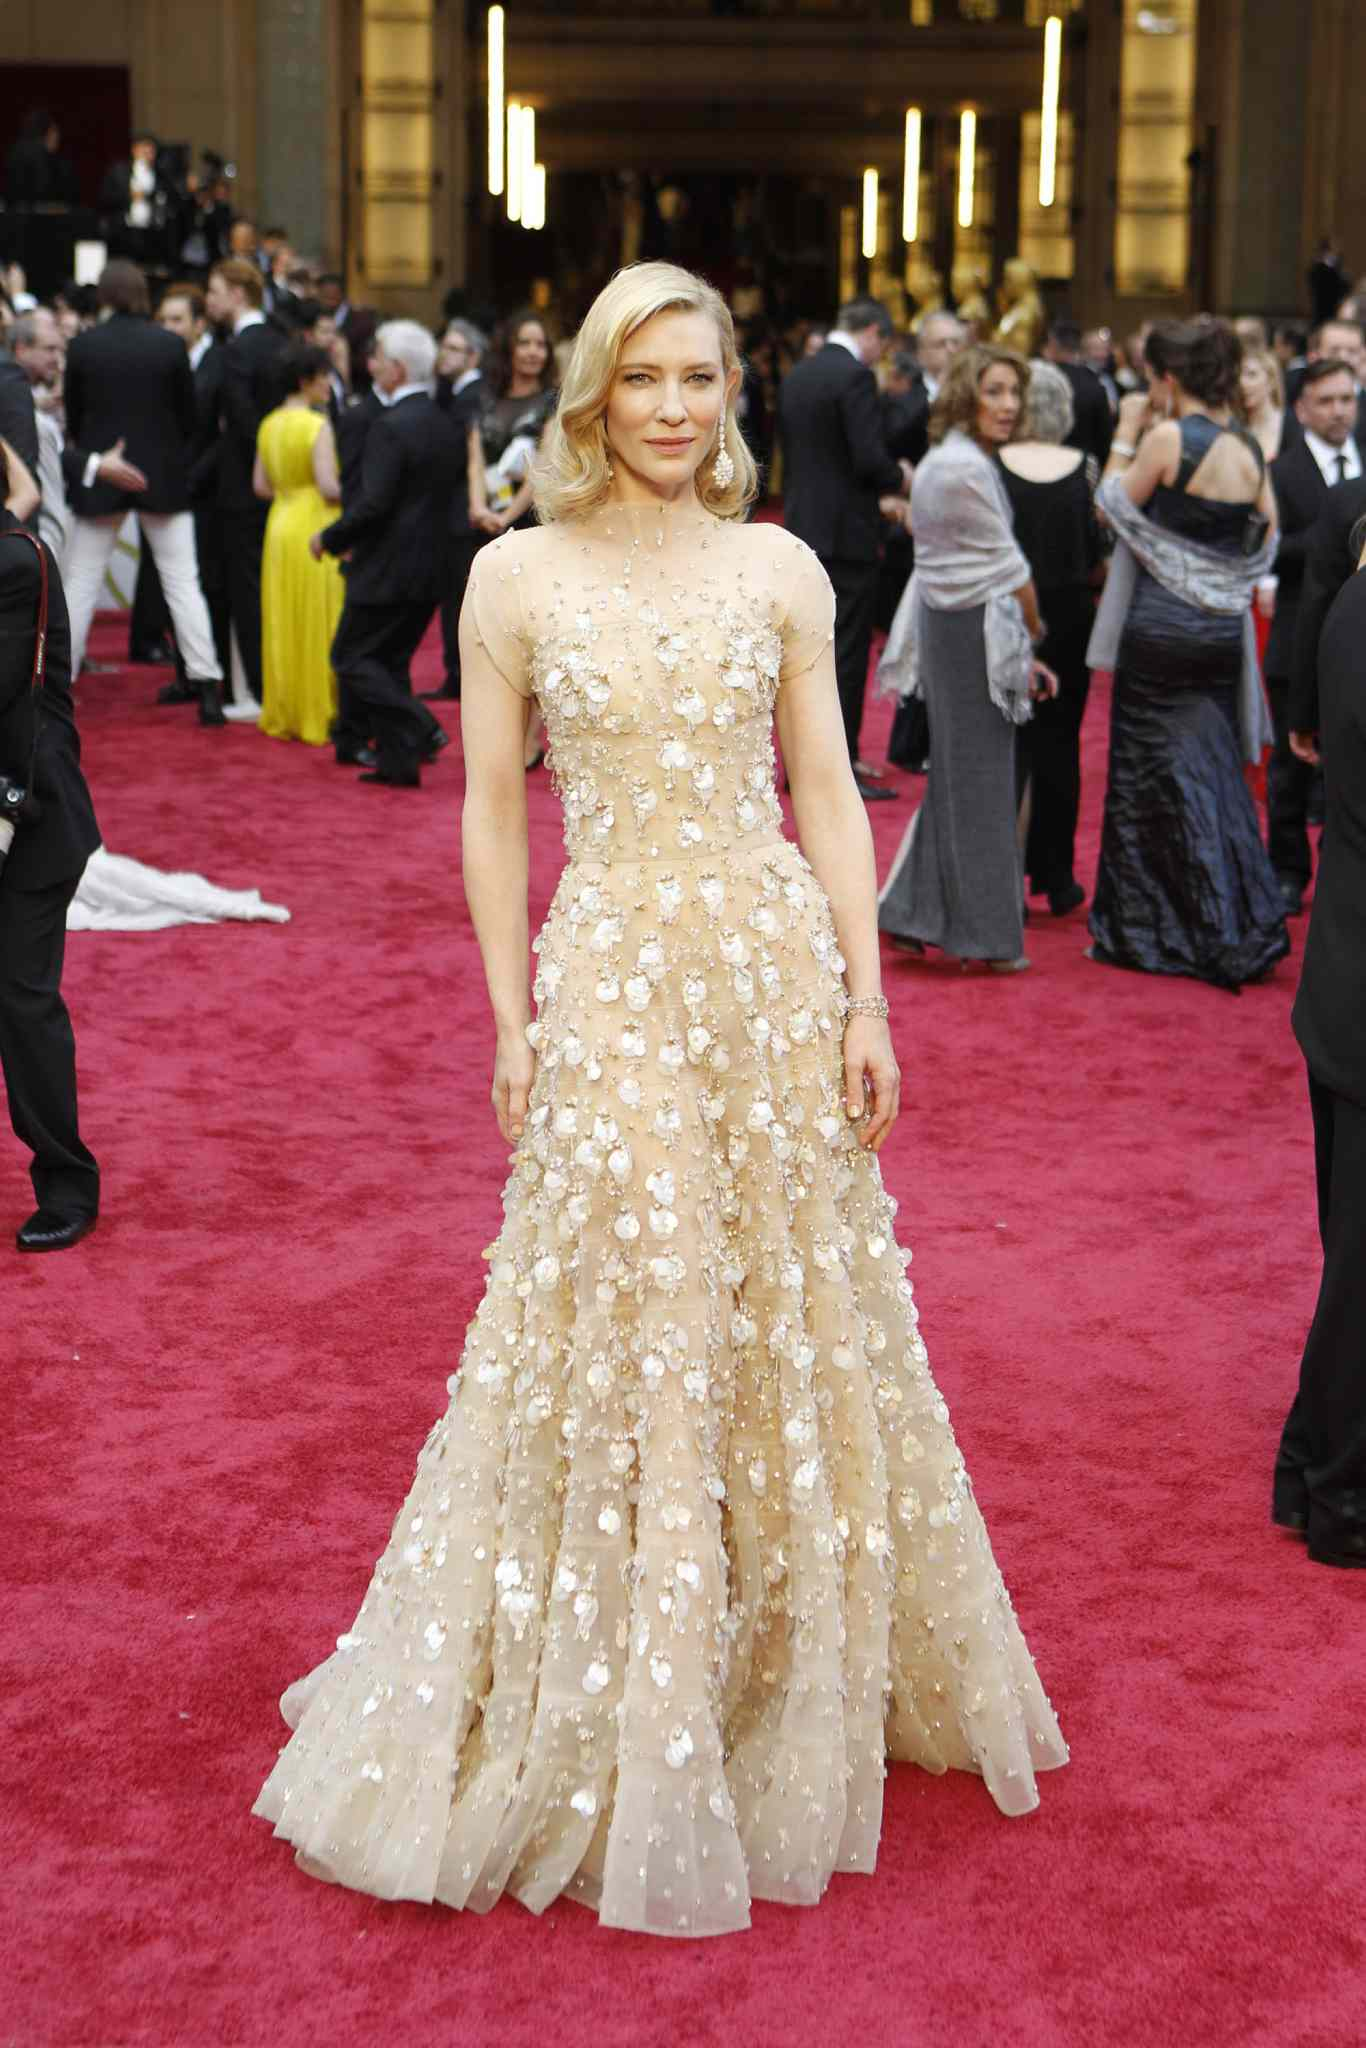 Cate Blanchett arrives at the 86th annual Academy Awards.